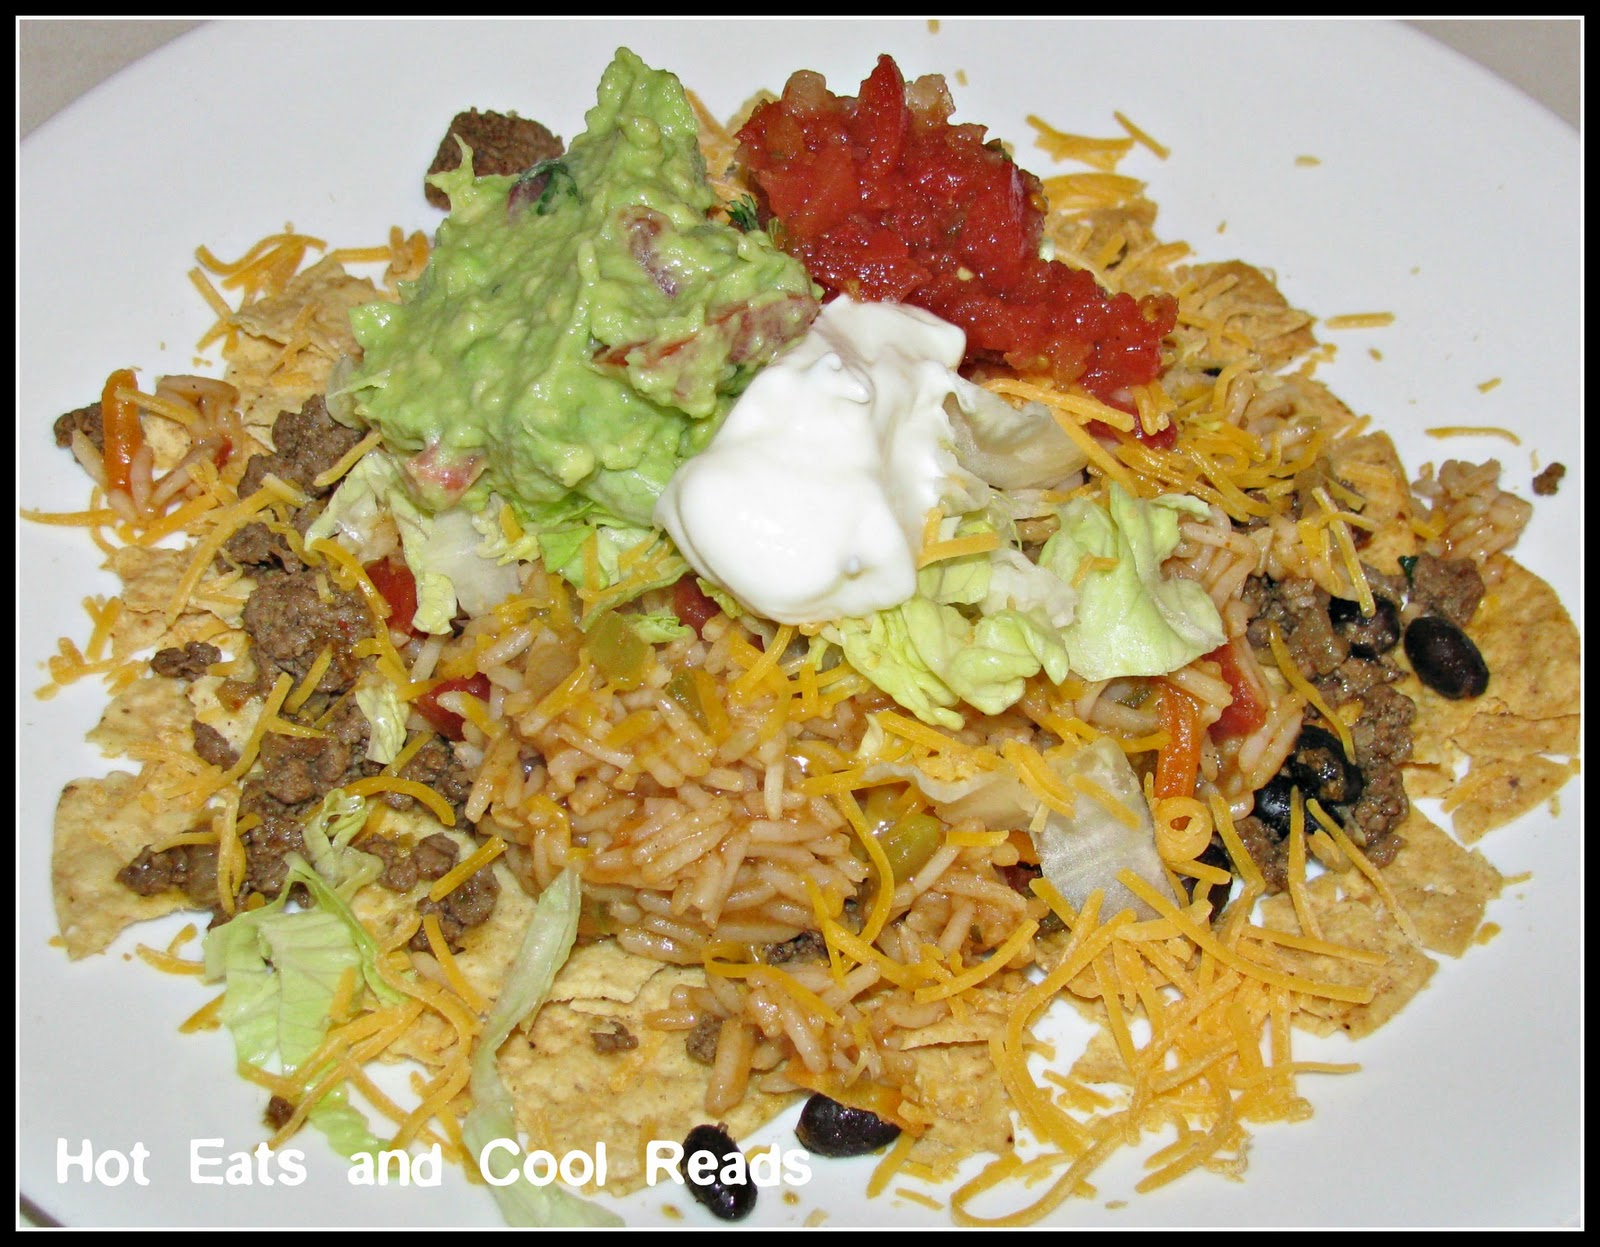 Hot Eats and Cool Reads: Incredible Taco Salad Recipe